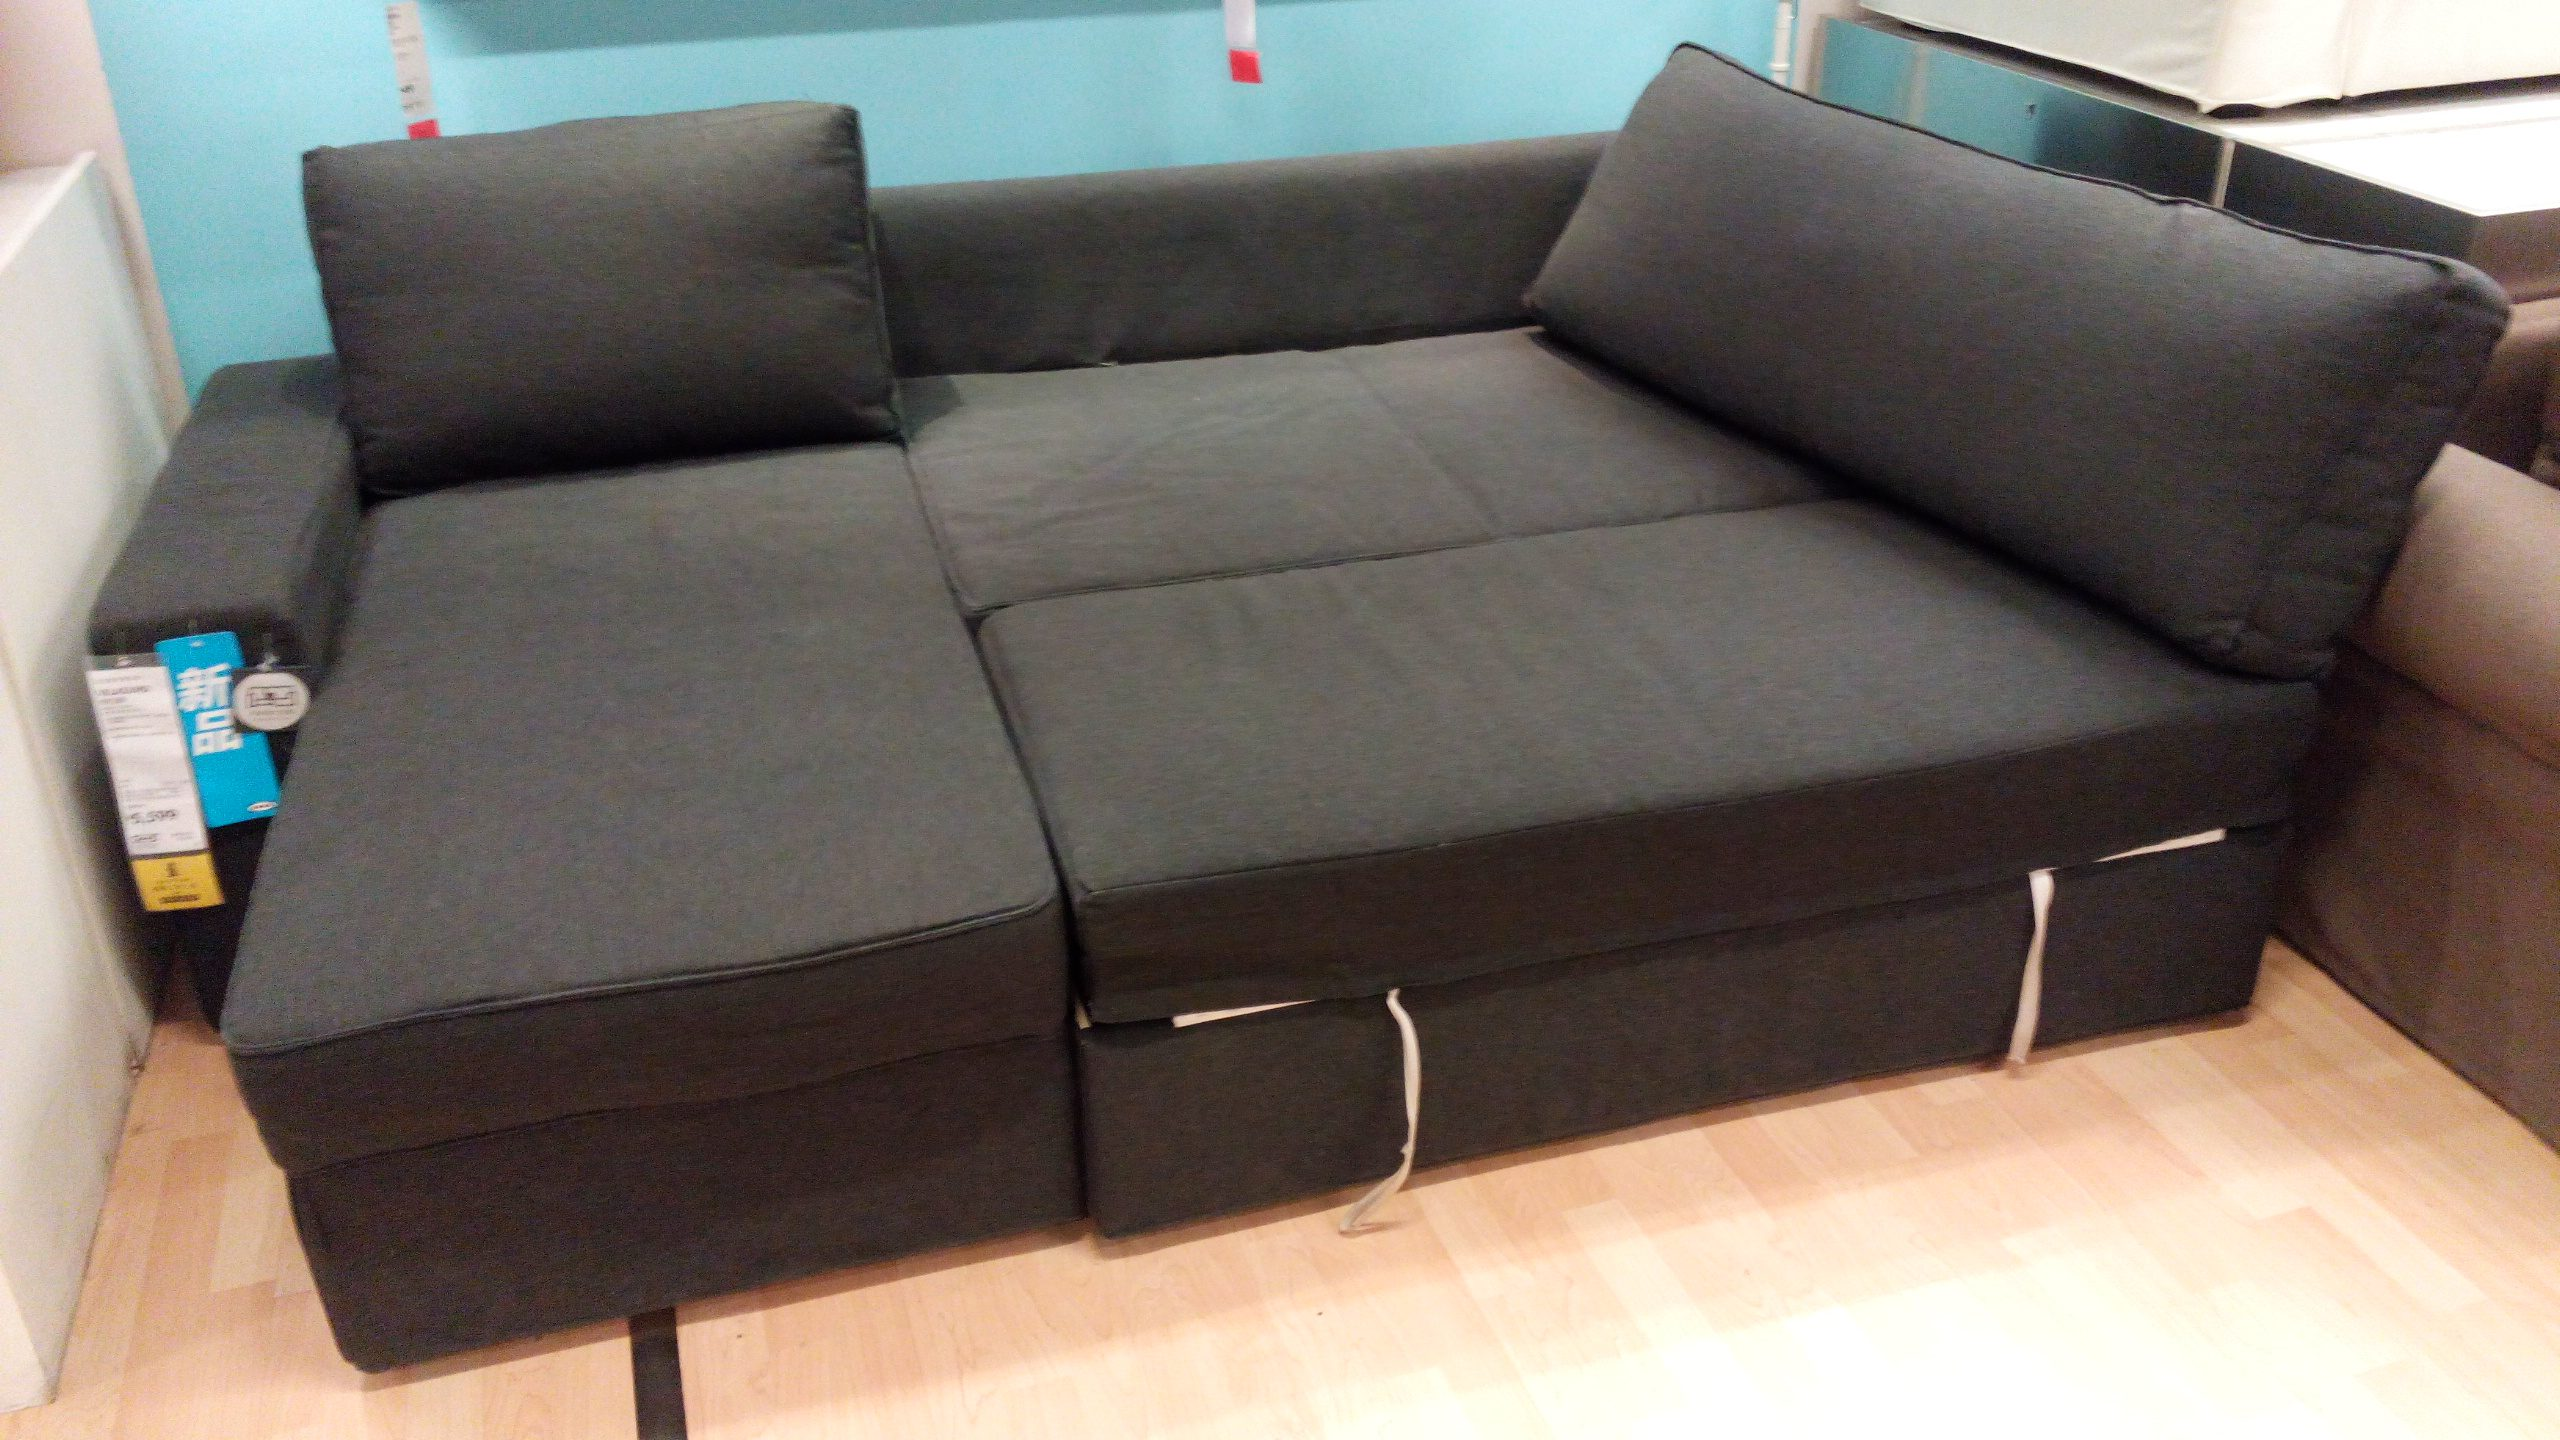 Sofa Dreier Ikea Dreier Couch Awesome Good Models Of Ikea Kivik Cover Of New